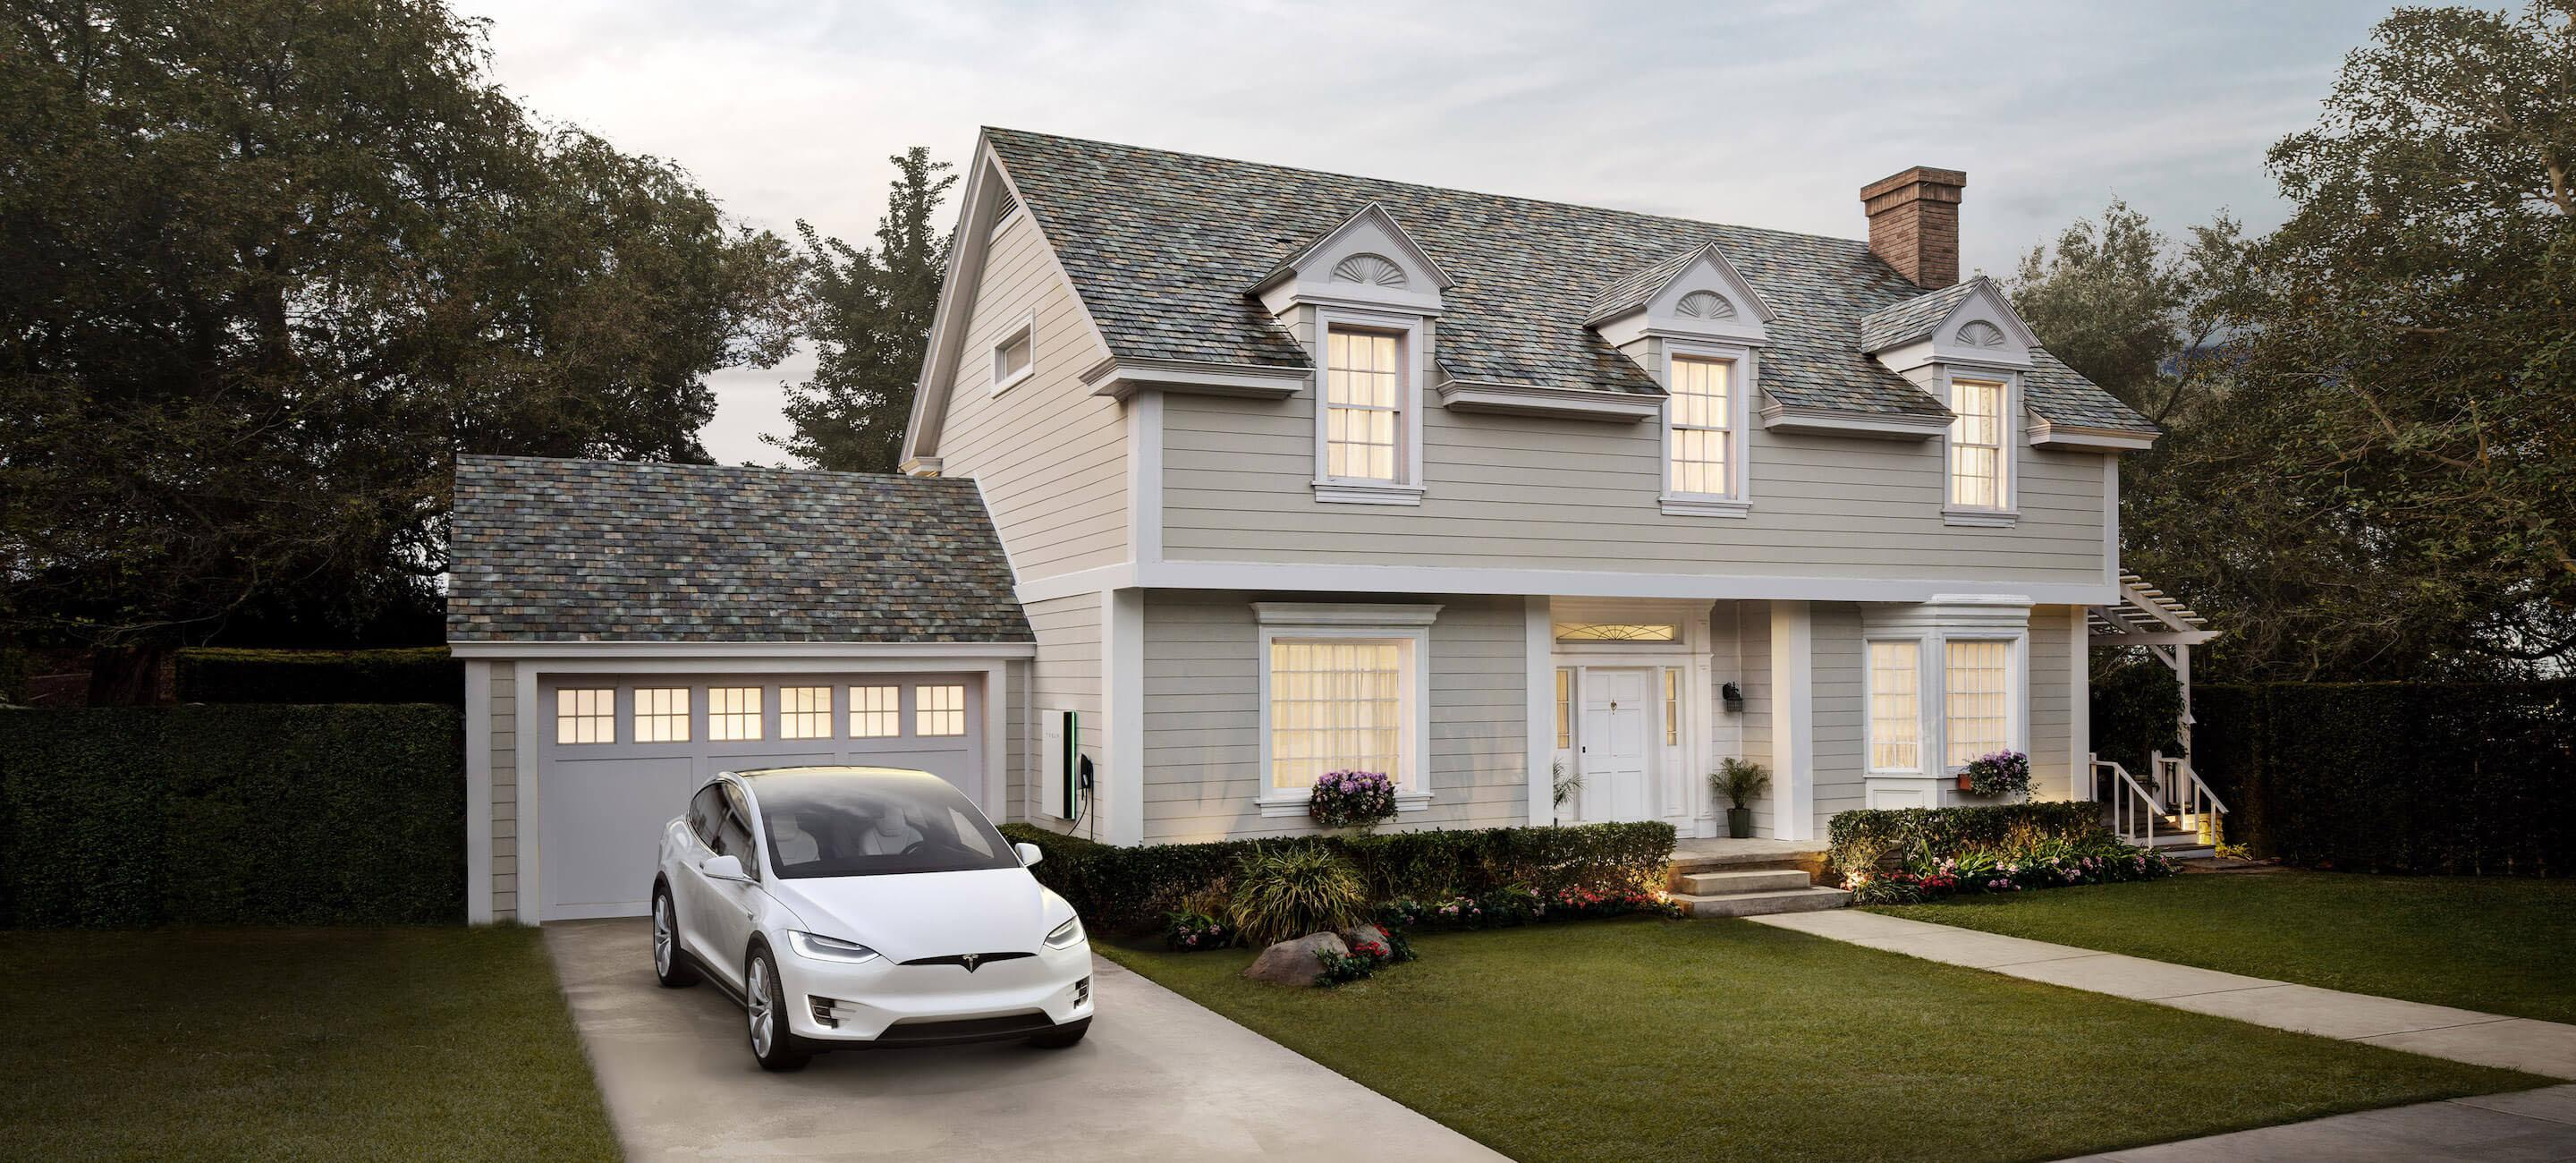 Roofers are seeing a lot more job opportunities thanks to Tesla